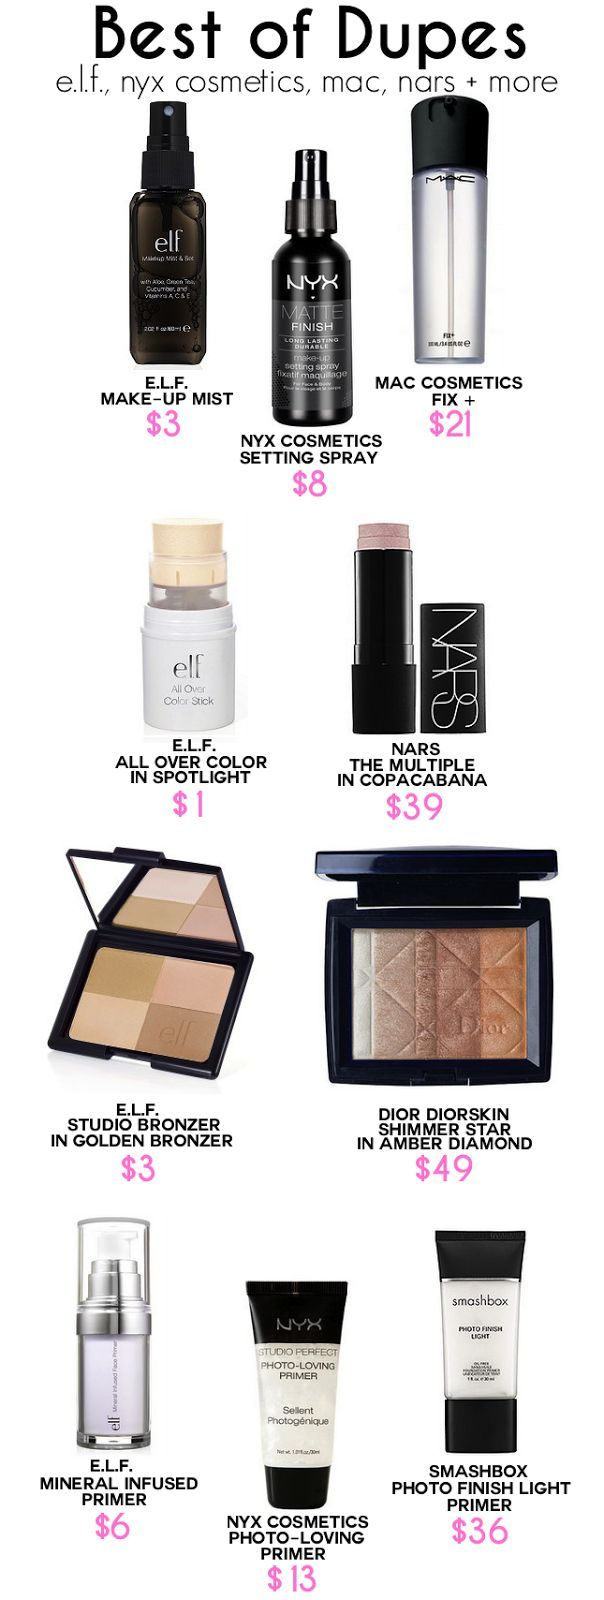 best beauty board images on pinterest beauty makeup cosmetics